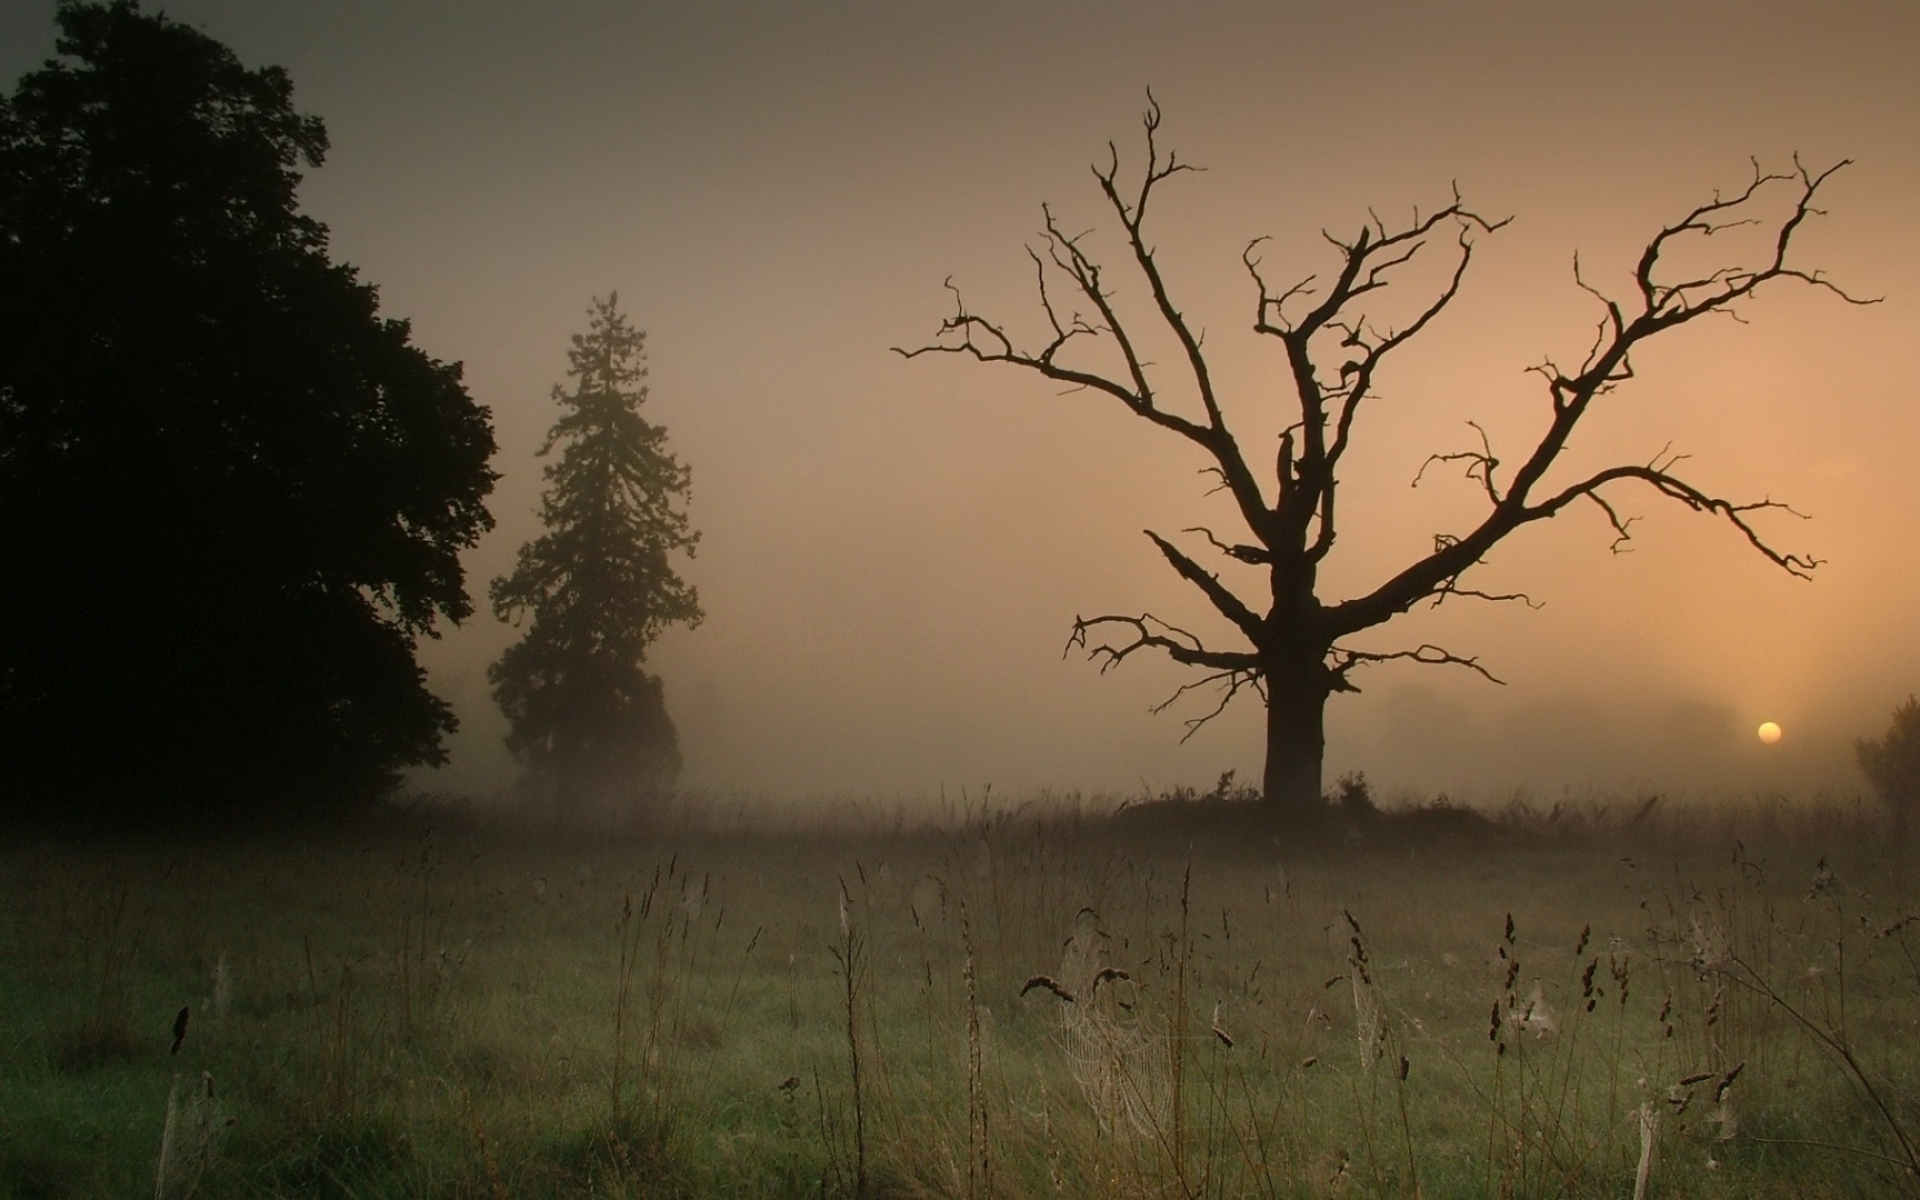 Dark Trees Hd Wallpapers: Meadow Dark Trees Foggy Sunset Wallpapers